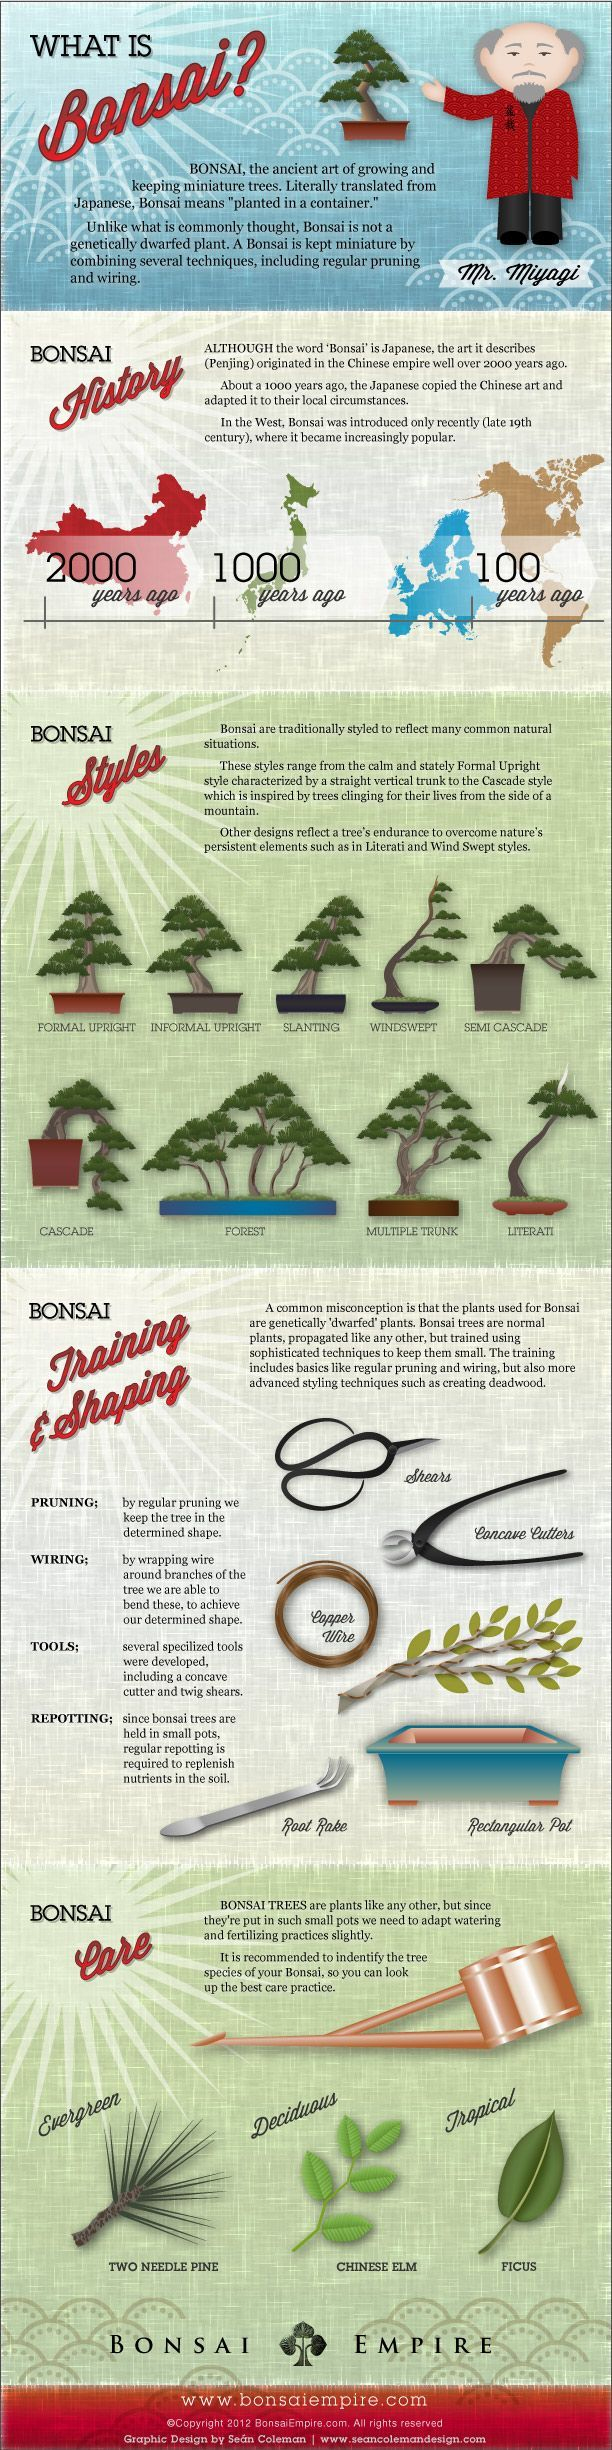 Bonsai Trees for Dummies infographic